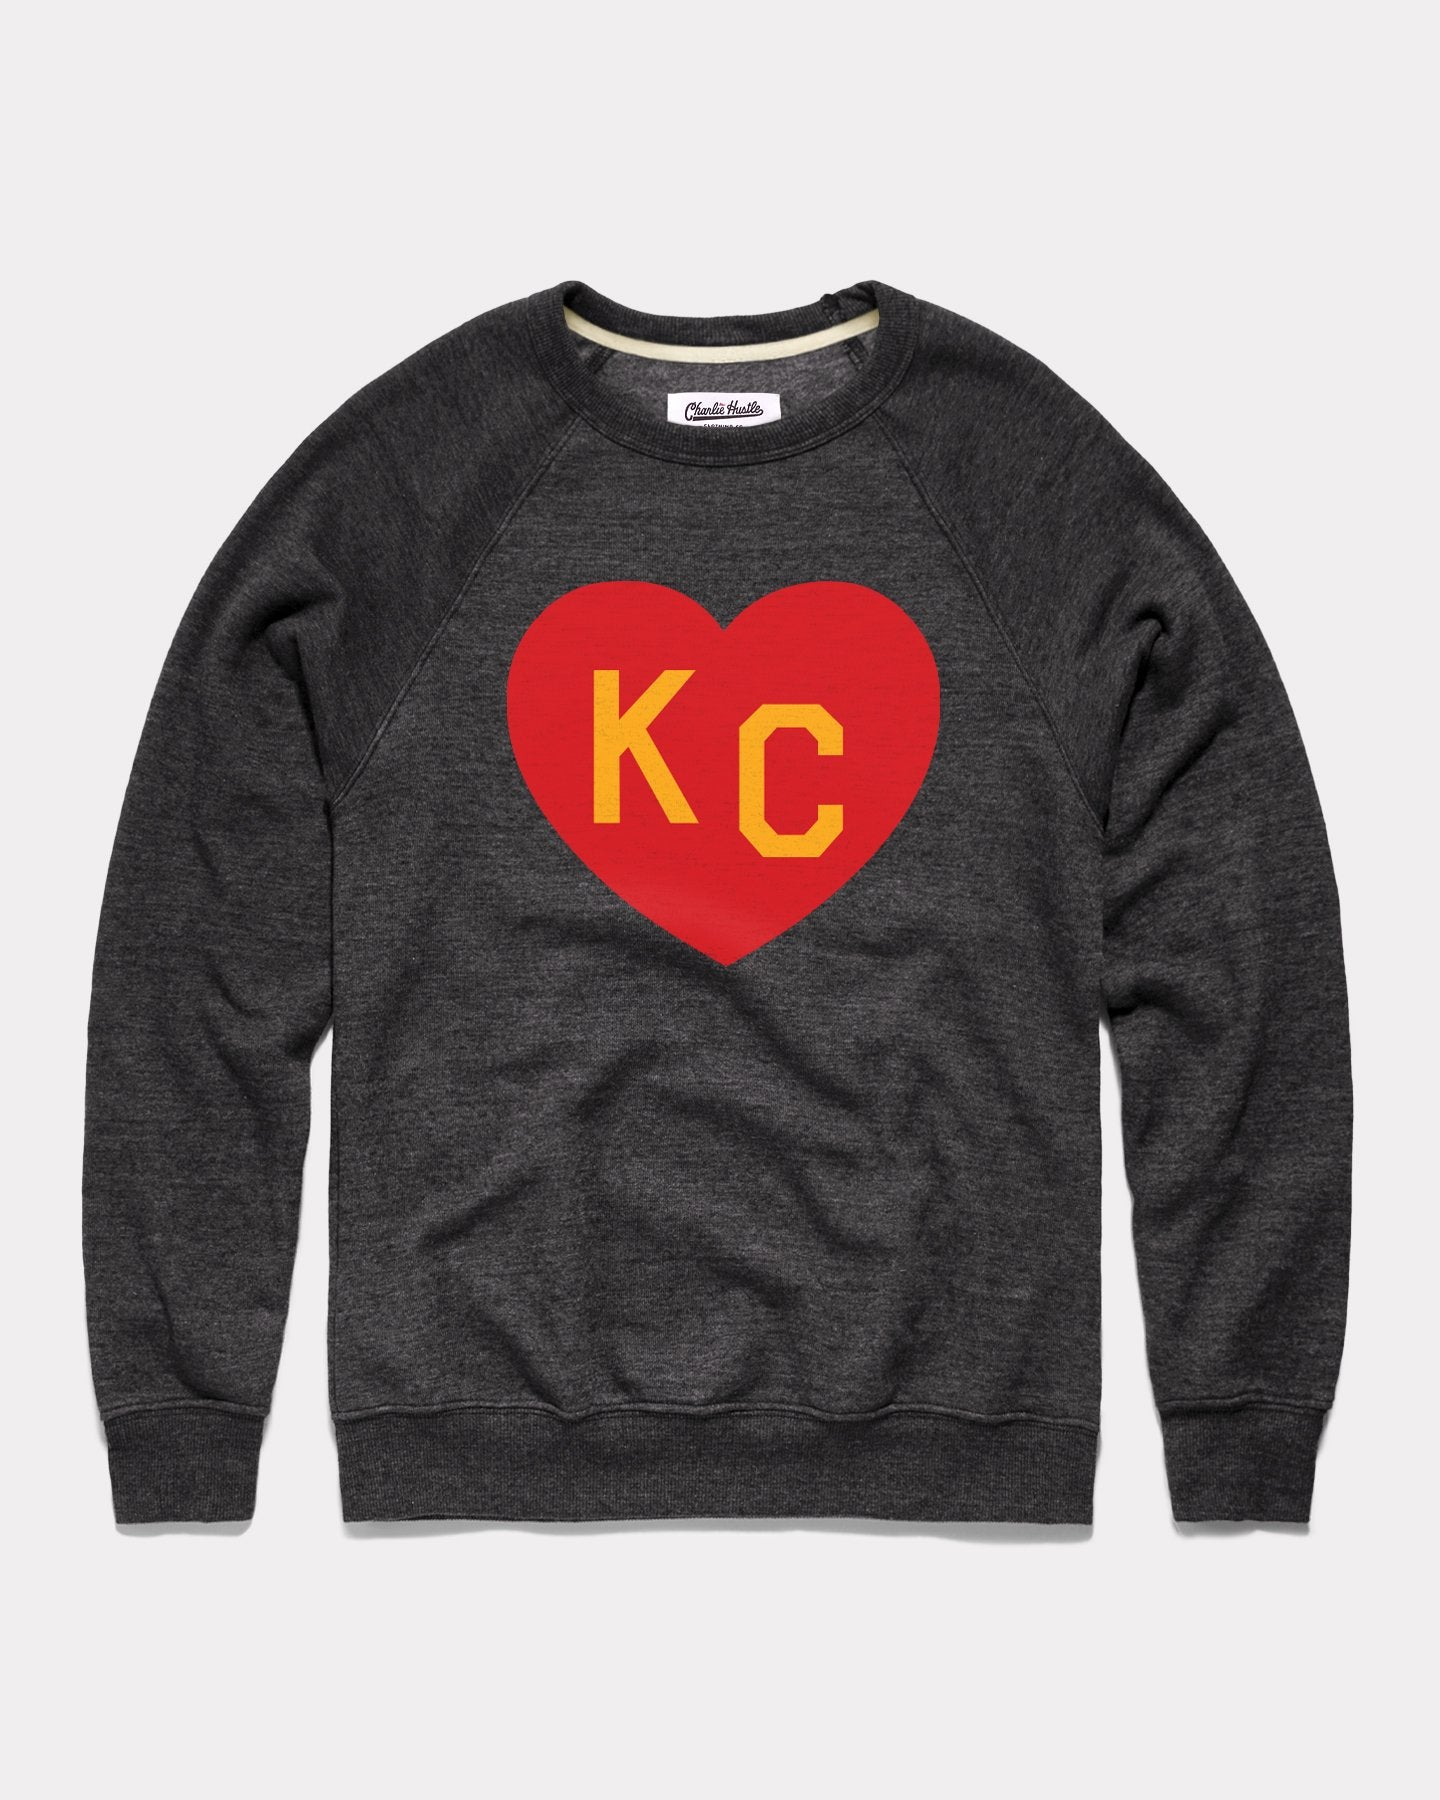 Black & Red Arrowhead KC Heart Vintage Crewneck Sweatshirt